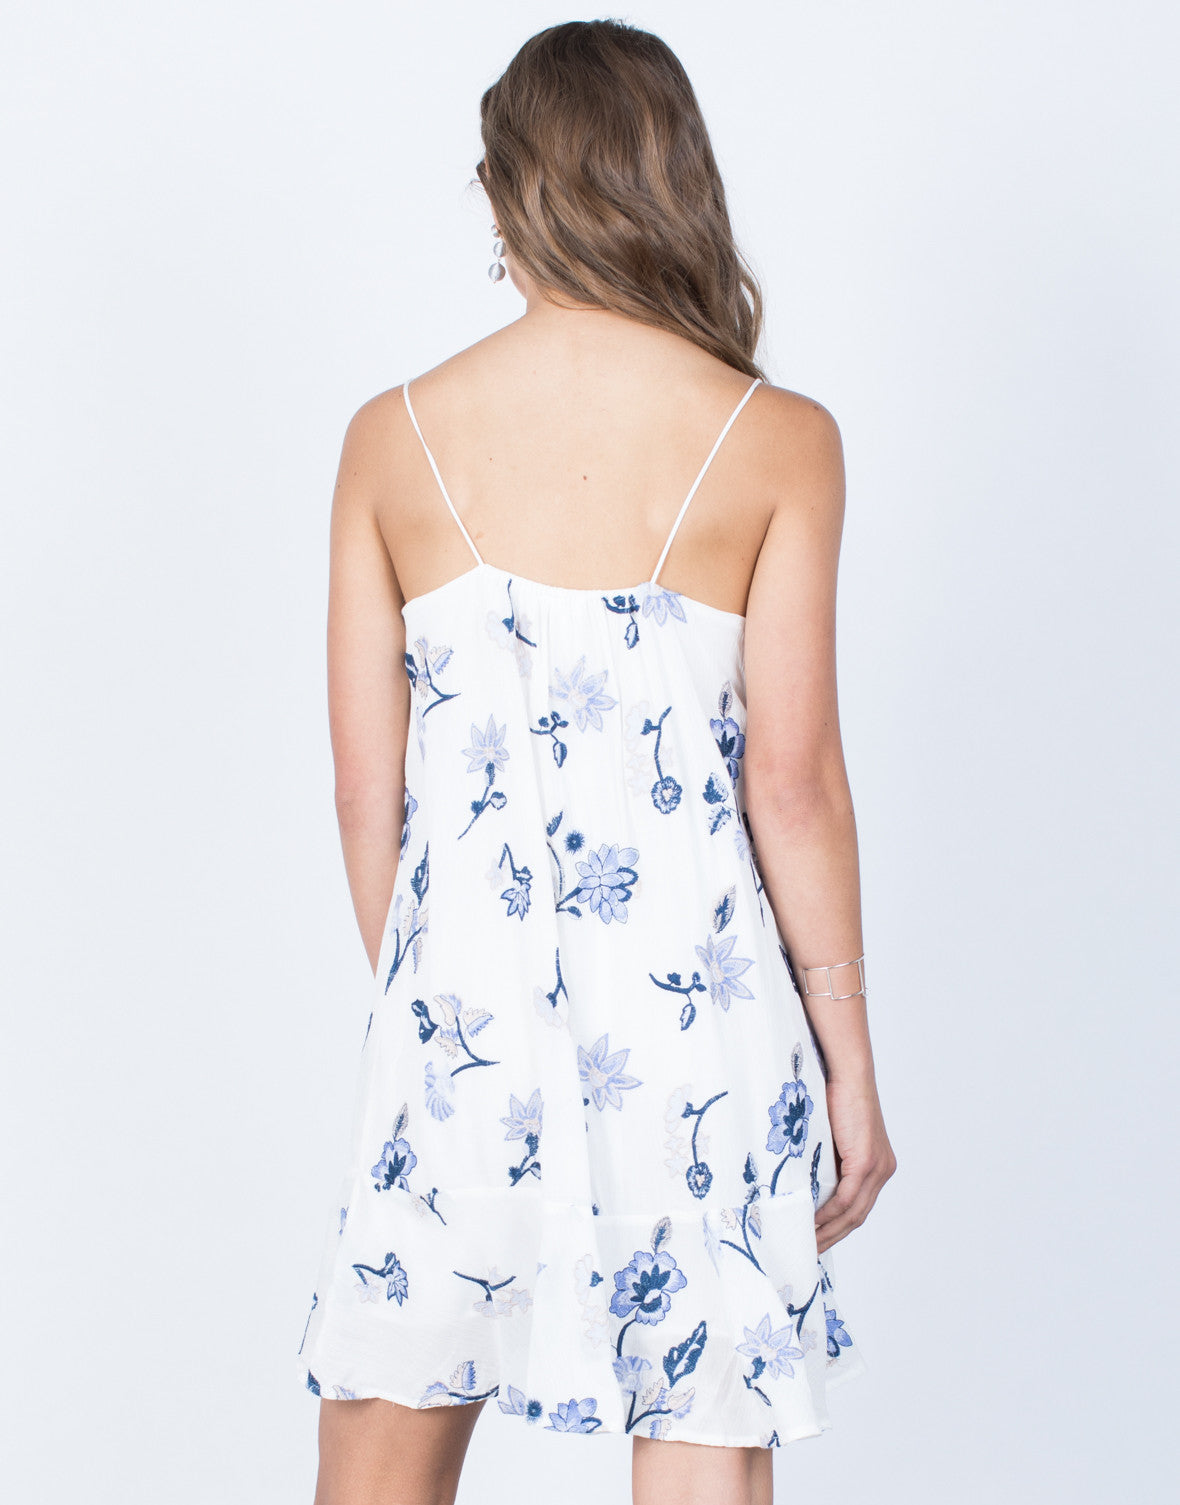 Back View Morning Glory Floral Dress